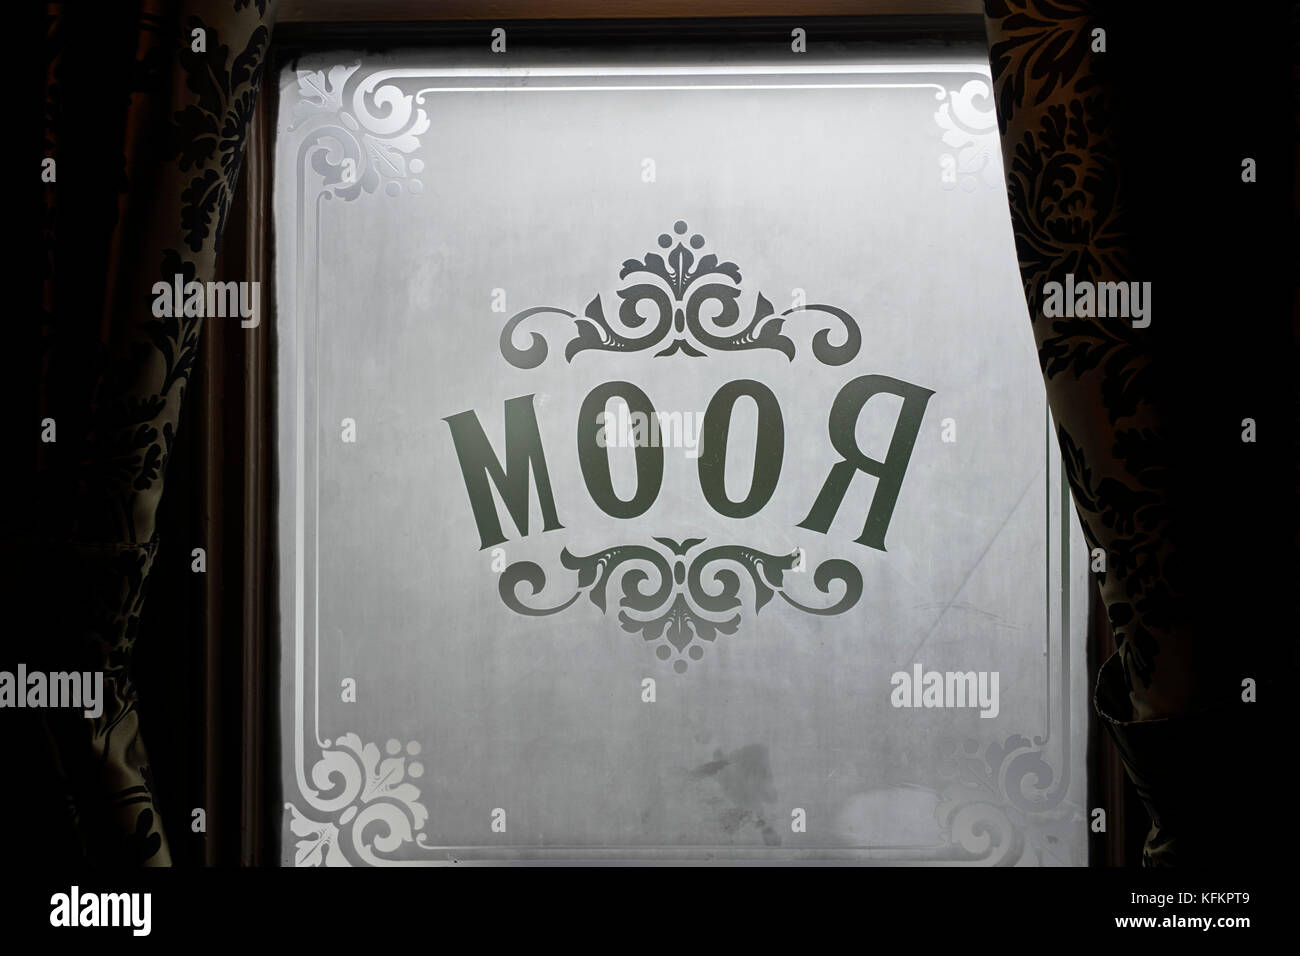 Room sign on etched glass in pub window - Stock Image